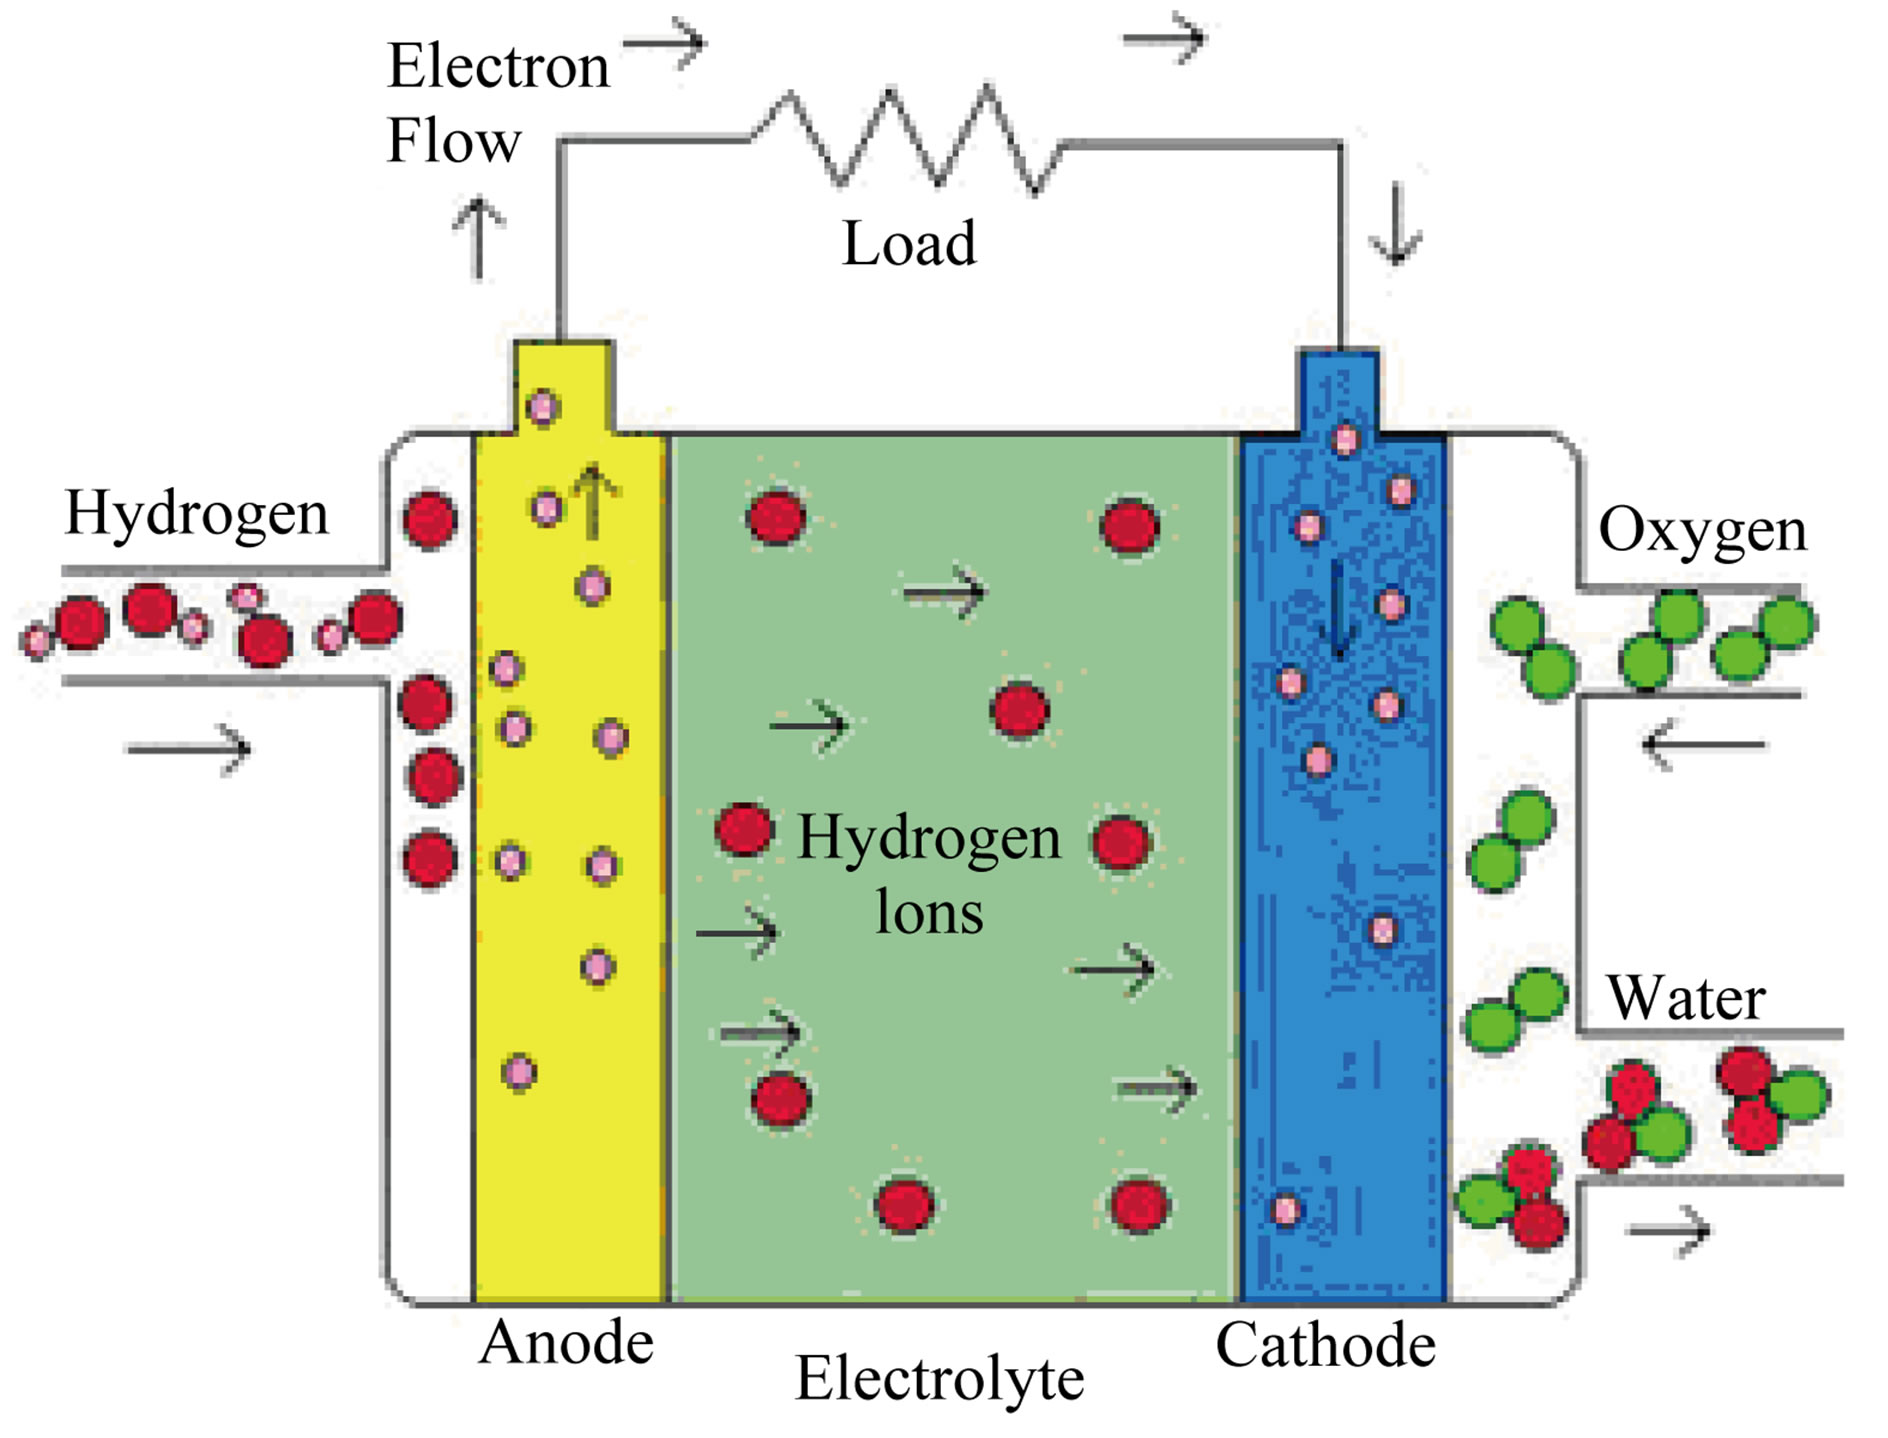 Dynamic Analysis of a Stand Alone Operation of PEM Fuel Cell System